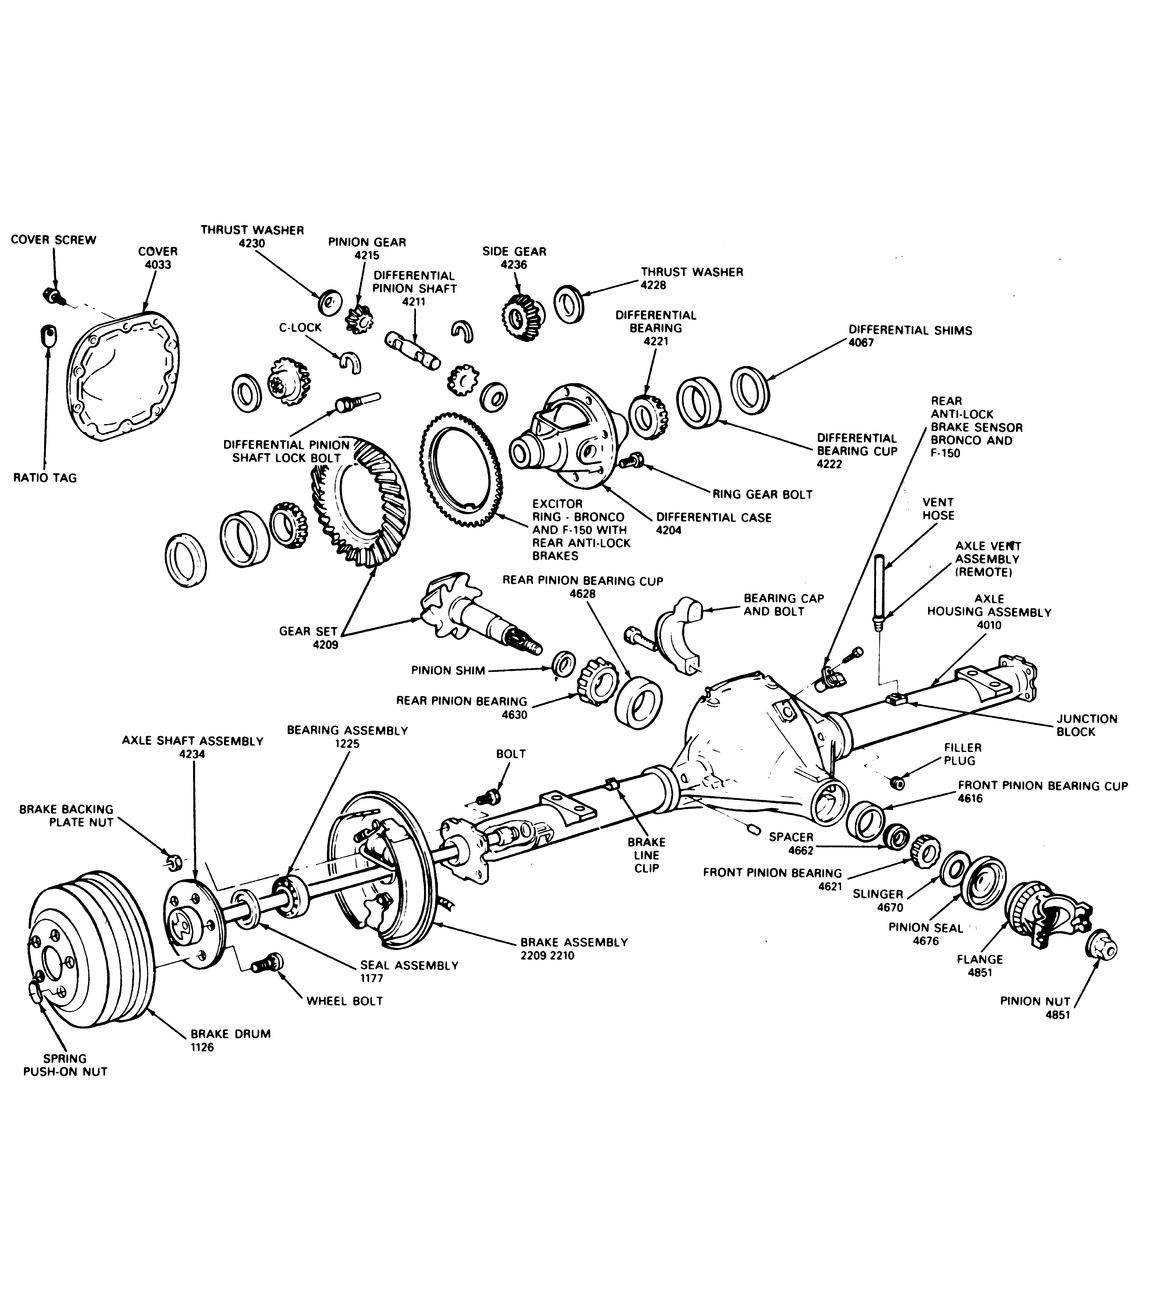 hight resolution of bx2200 parts diagram furthermore ford dana 44 front axle exploded ford f 250 4x4 front axle diagram moreover 1995 ford f 150 front axle